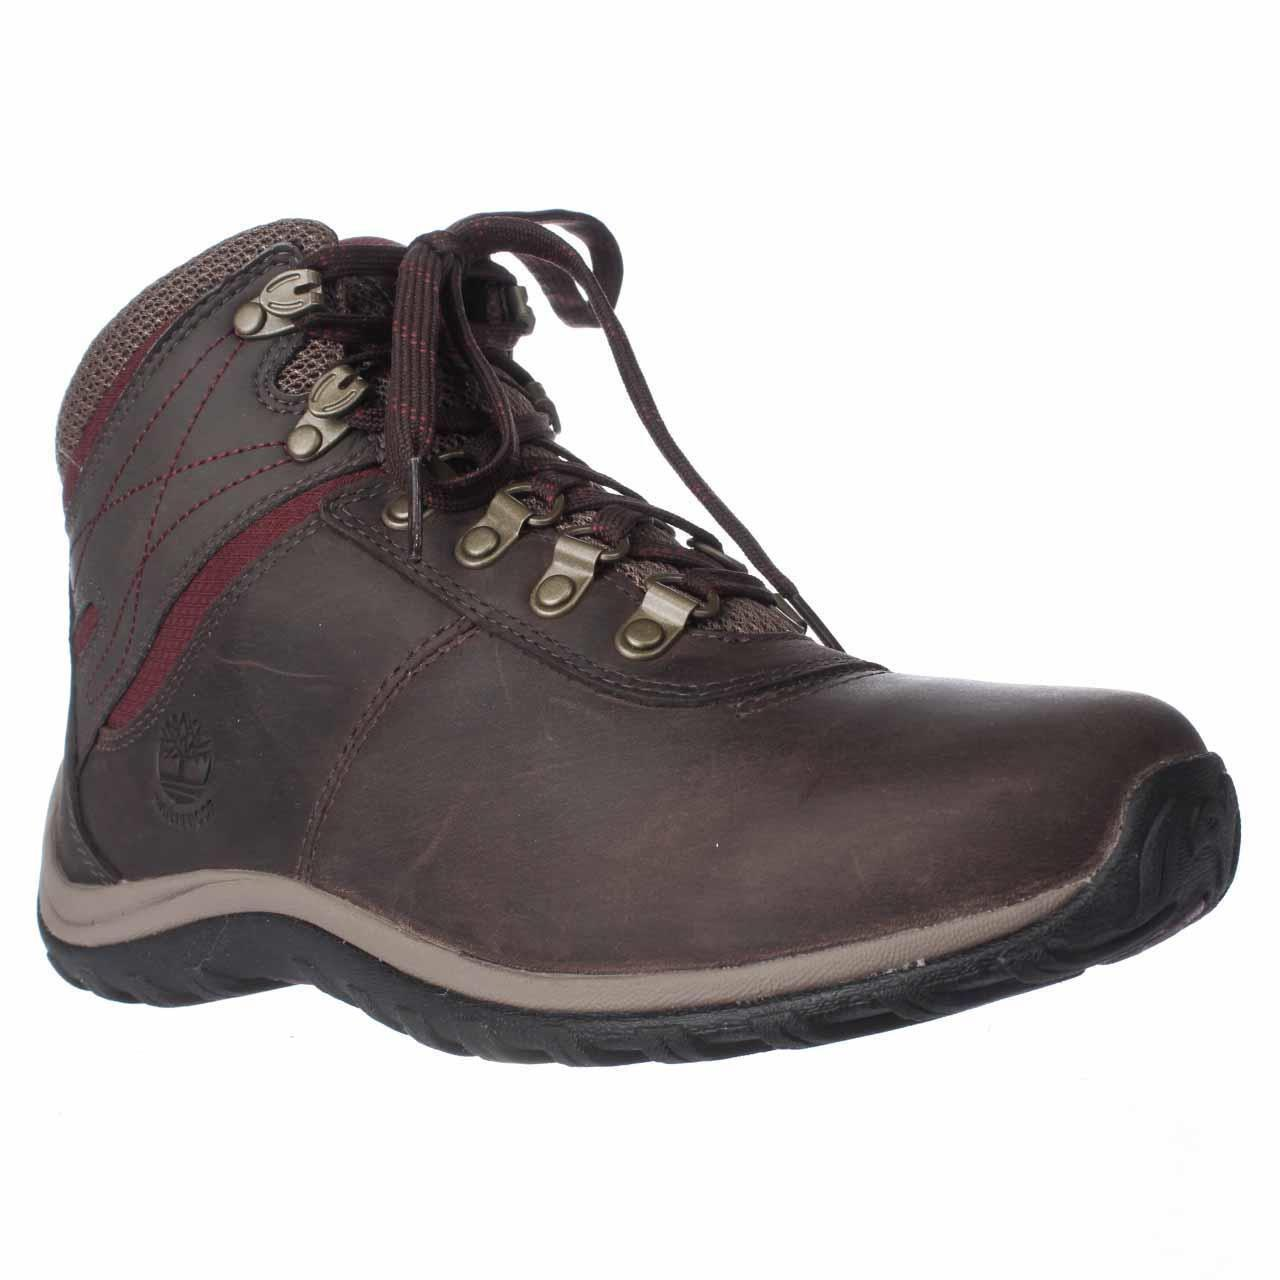 7e5e41f32ded8 Lyst - Timberland Norwood Waterproof Boots, Dark Brown in Brown